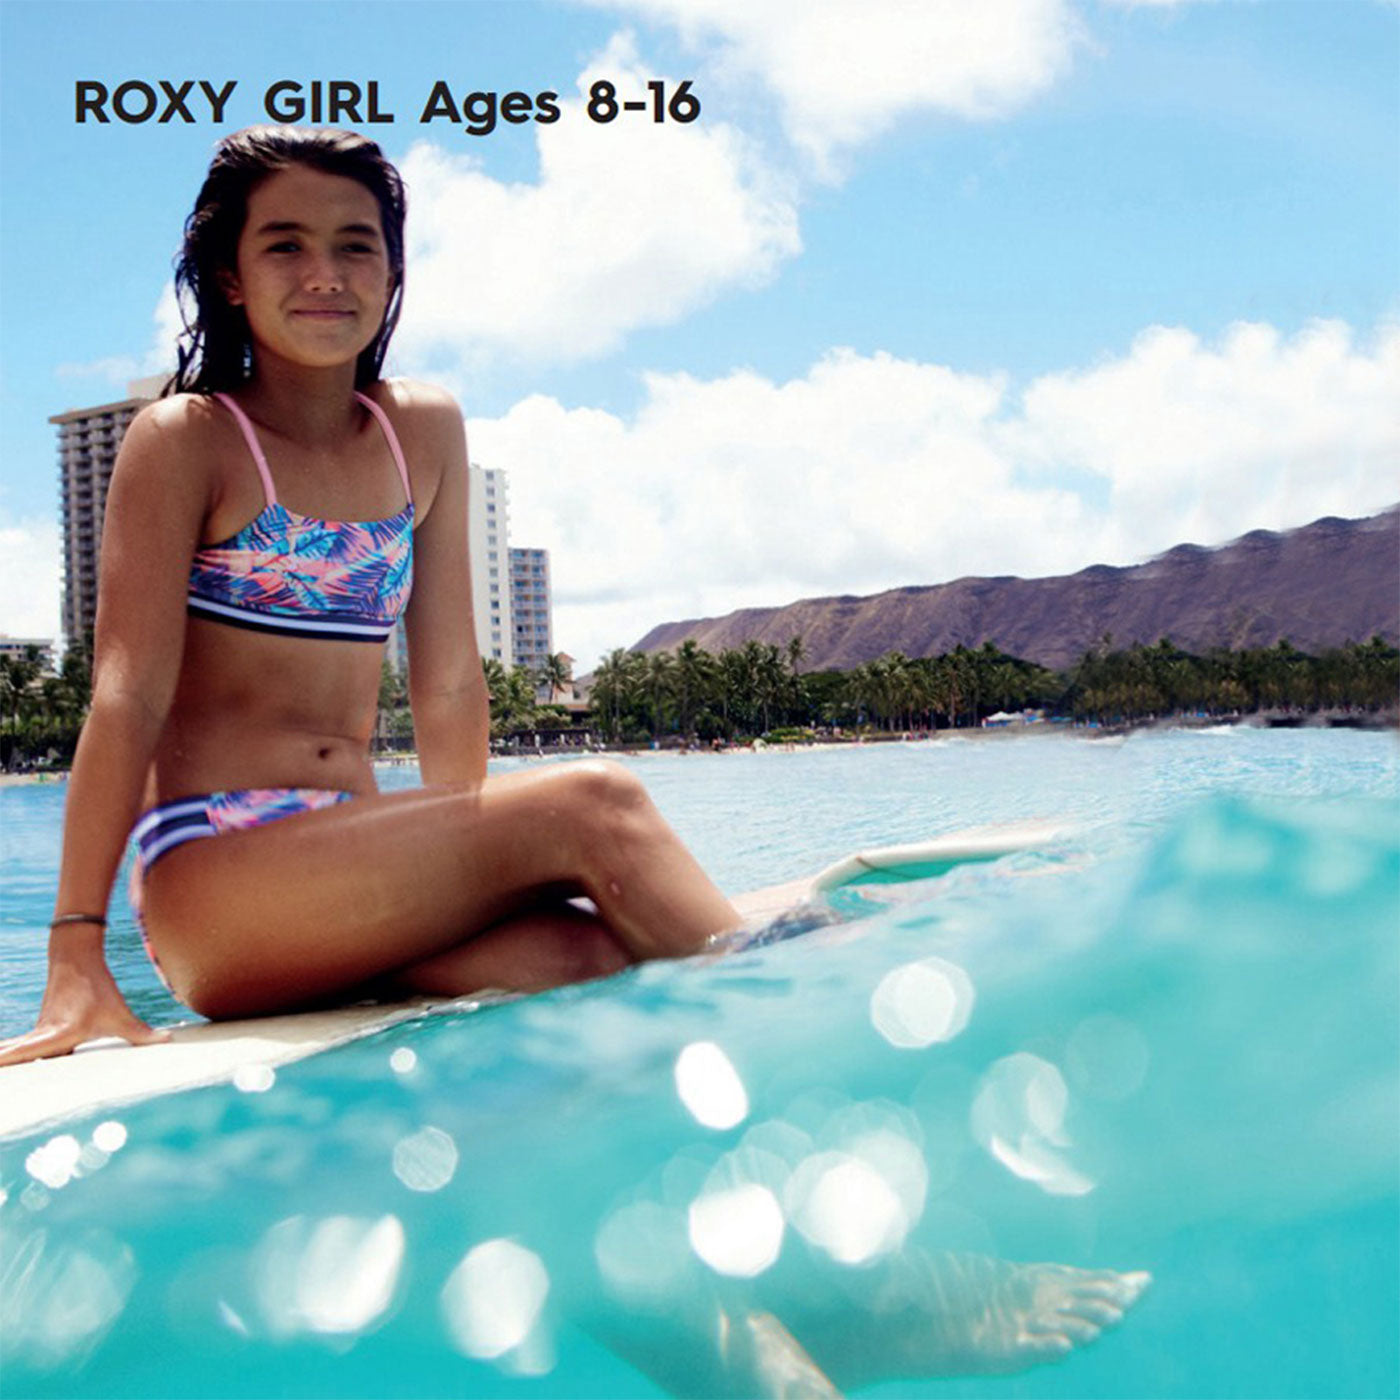 Roxy Surf Summer 2017 Young Girls Beach Surfing Swimwear Collection